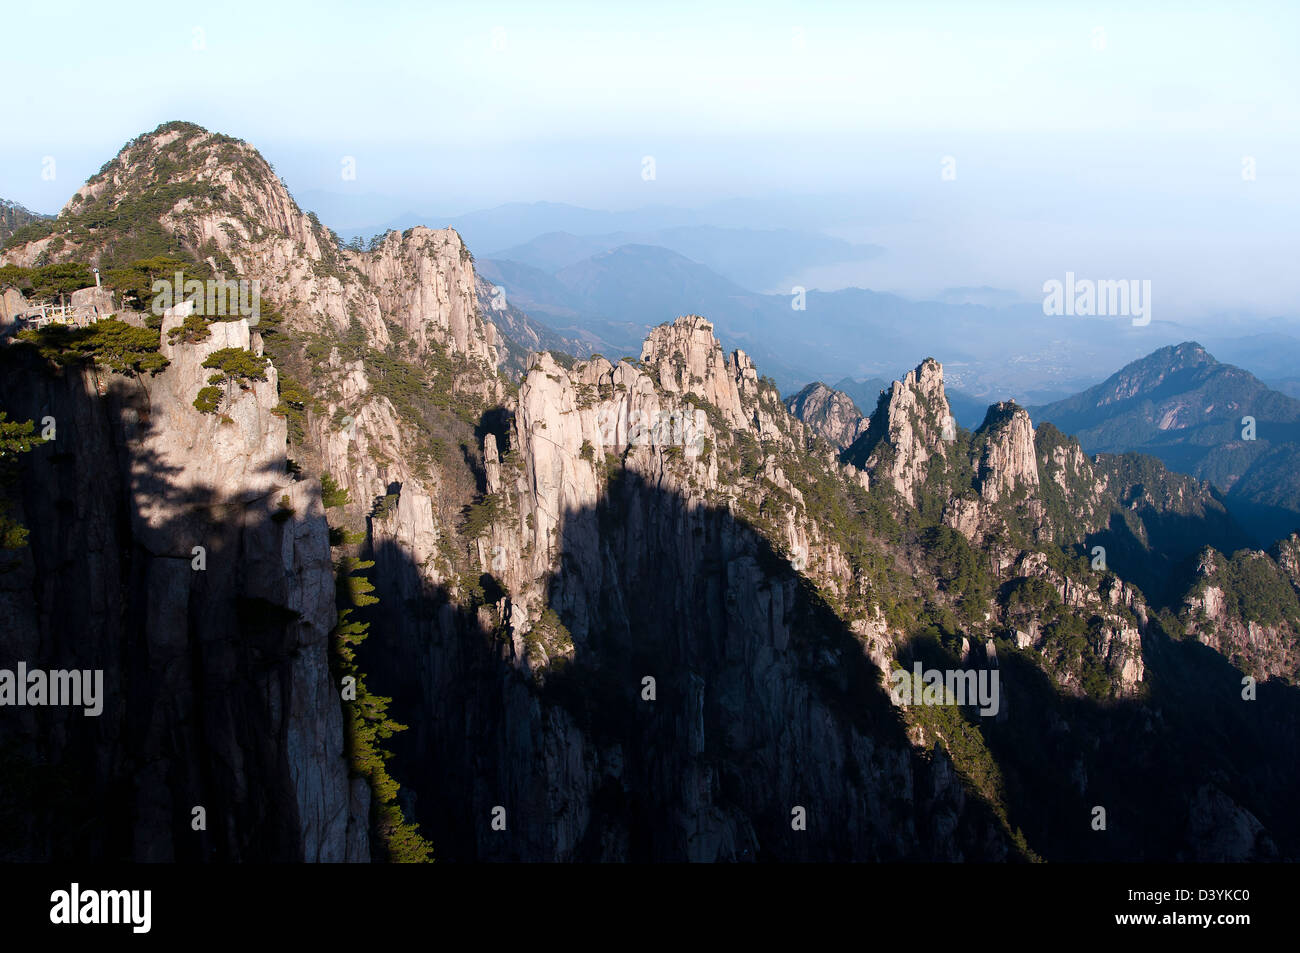 View from Beginning to Believe Peak, Huangshan, China - Stock Image